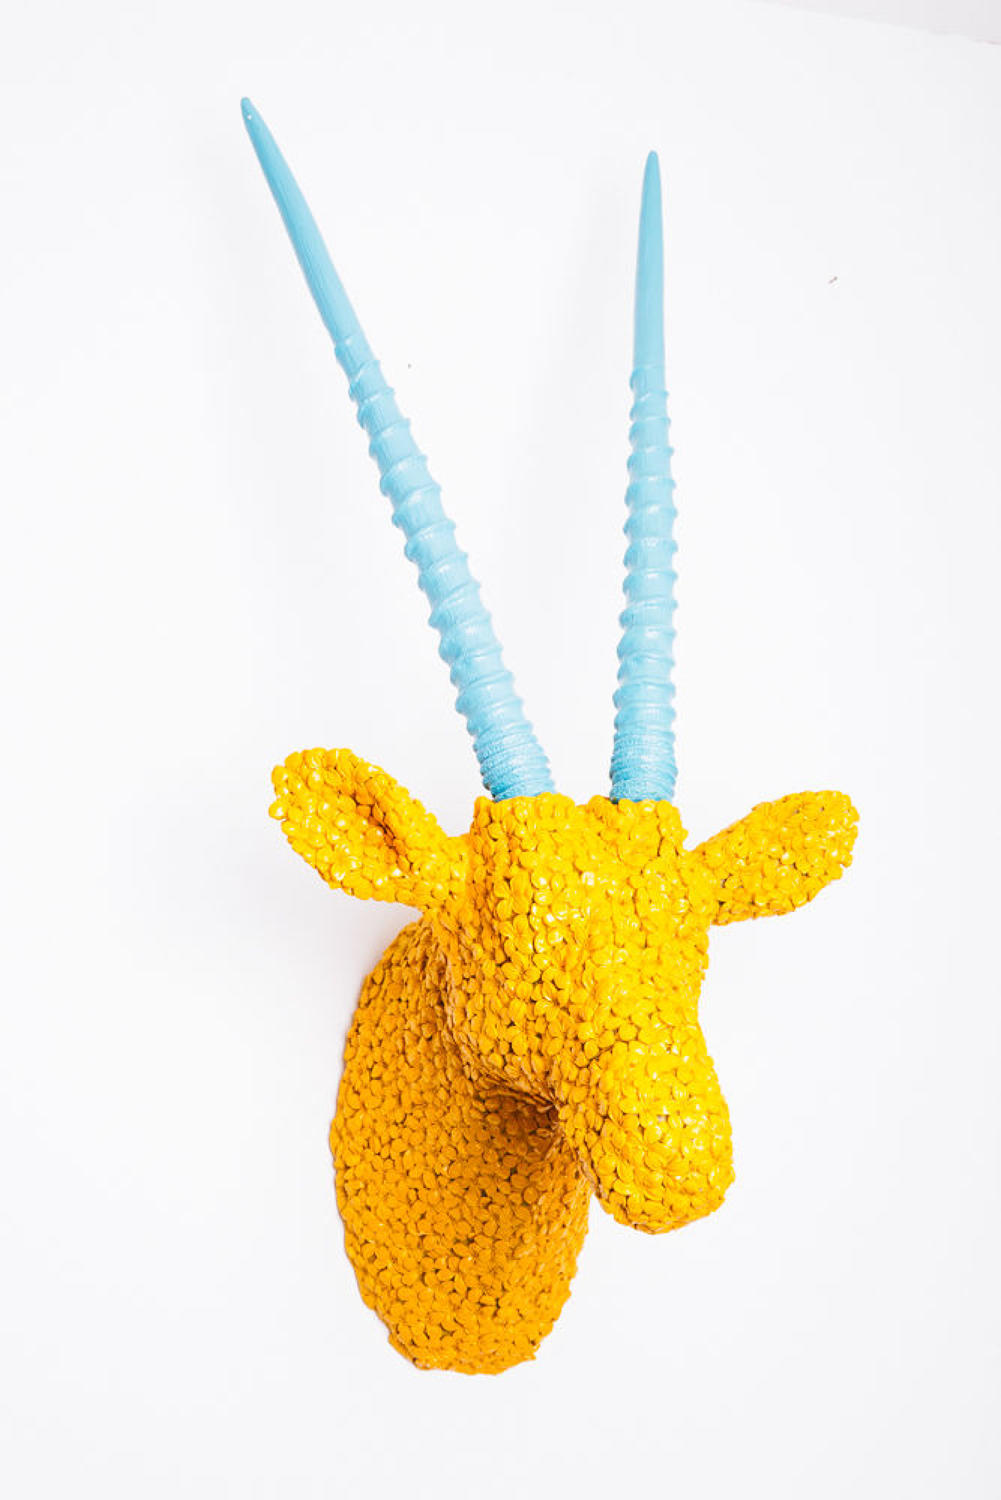 Yellow antelope trophy head with turquoise horns